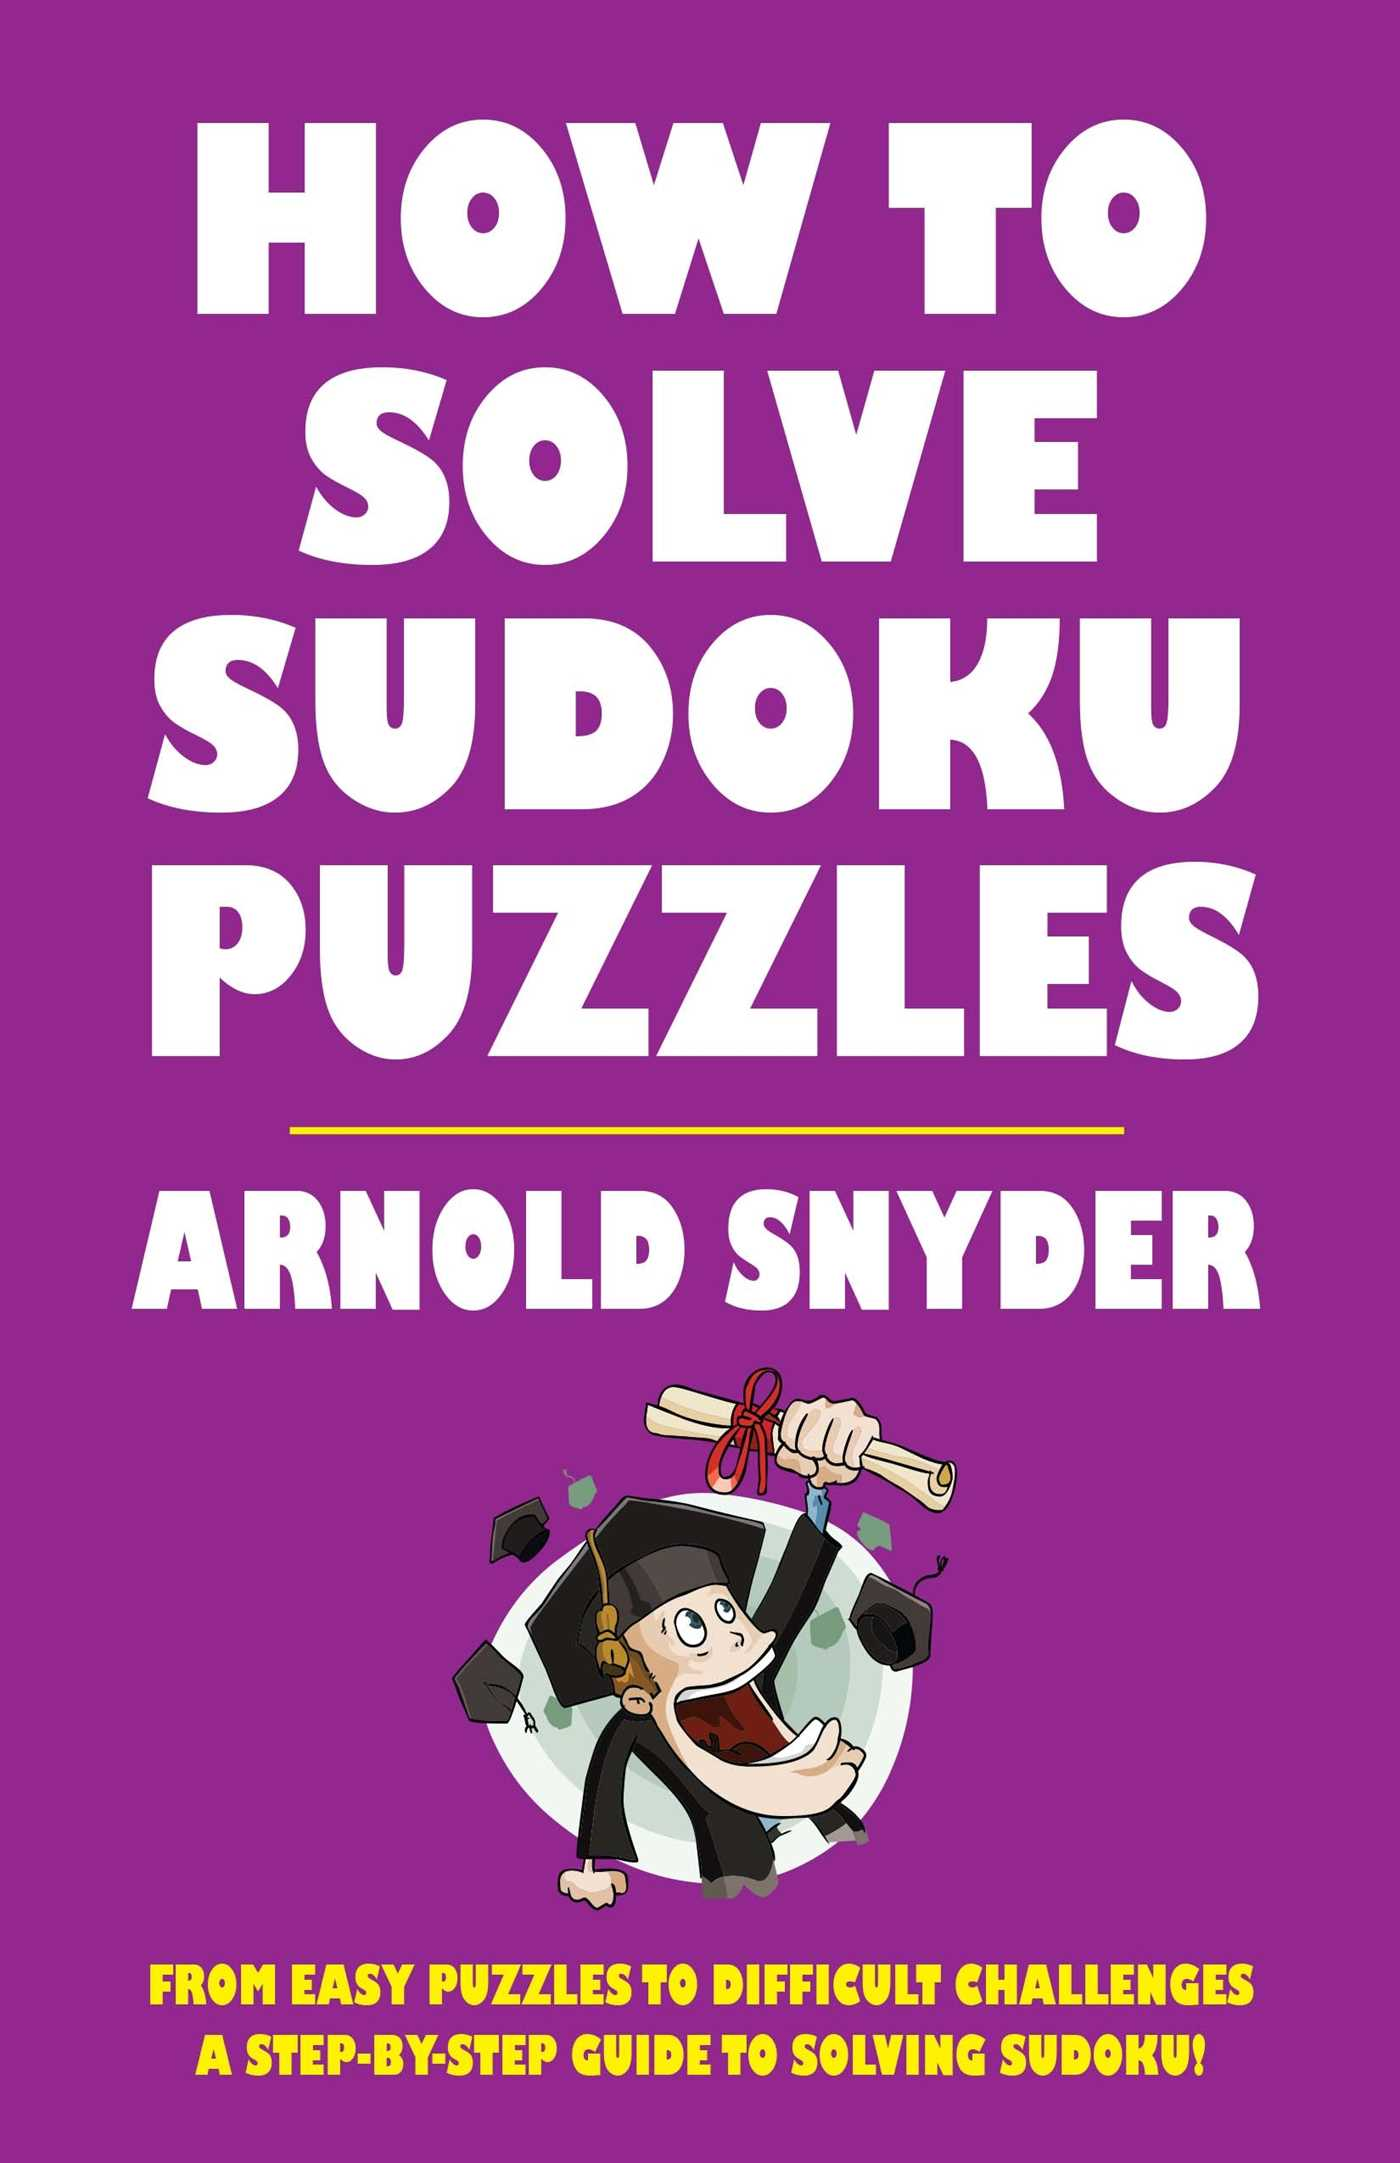 How To Solve Sudoku Puzzles